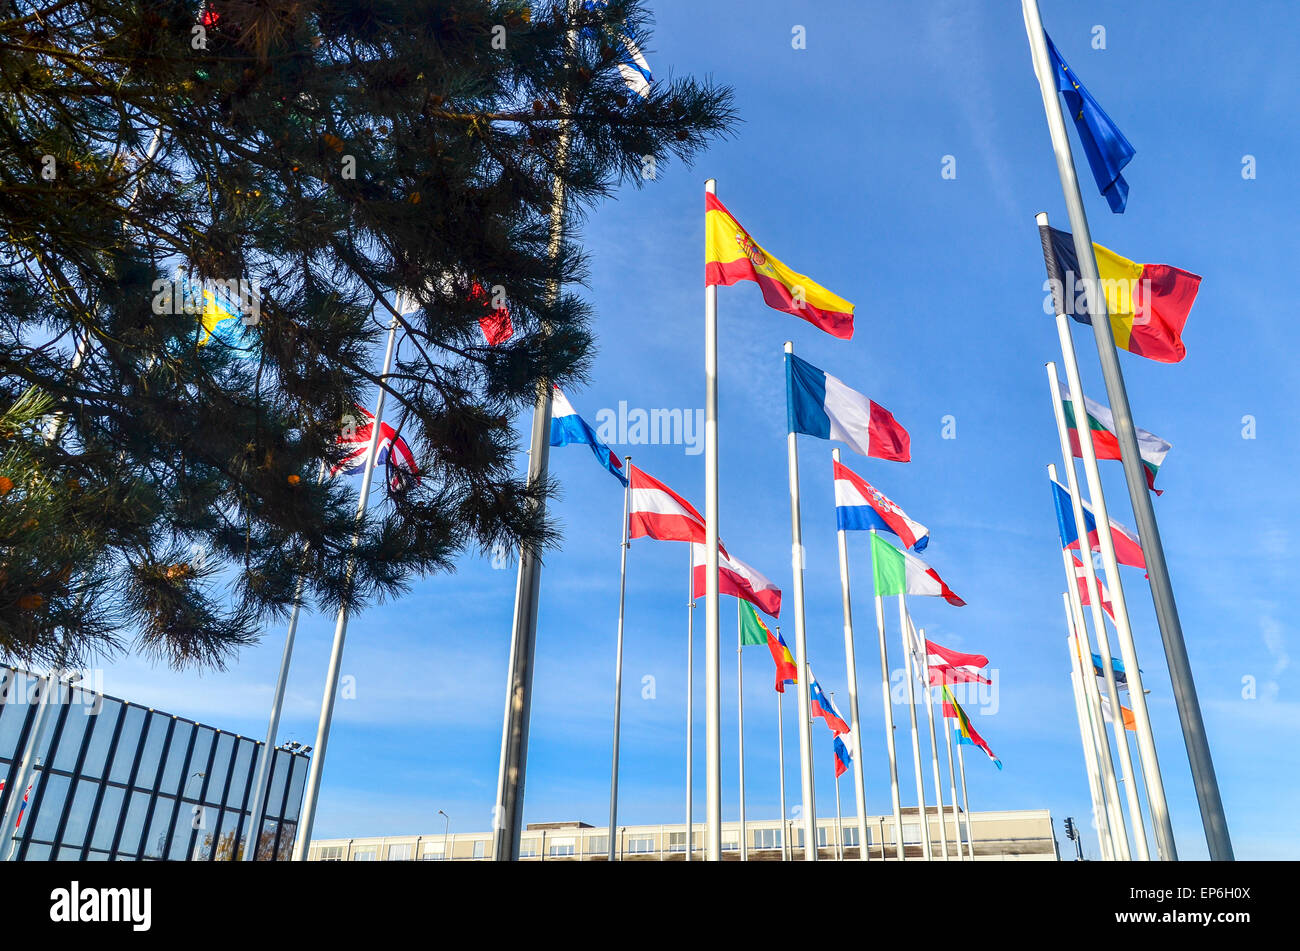 Spain, Romania, France ... Flags of the European Union countries at the European Commission, European Quarter, Luxembourg - Stock Image